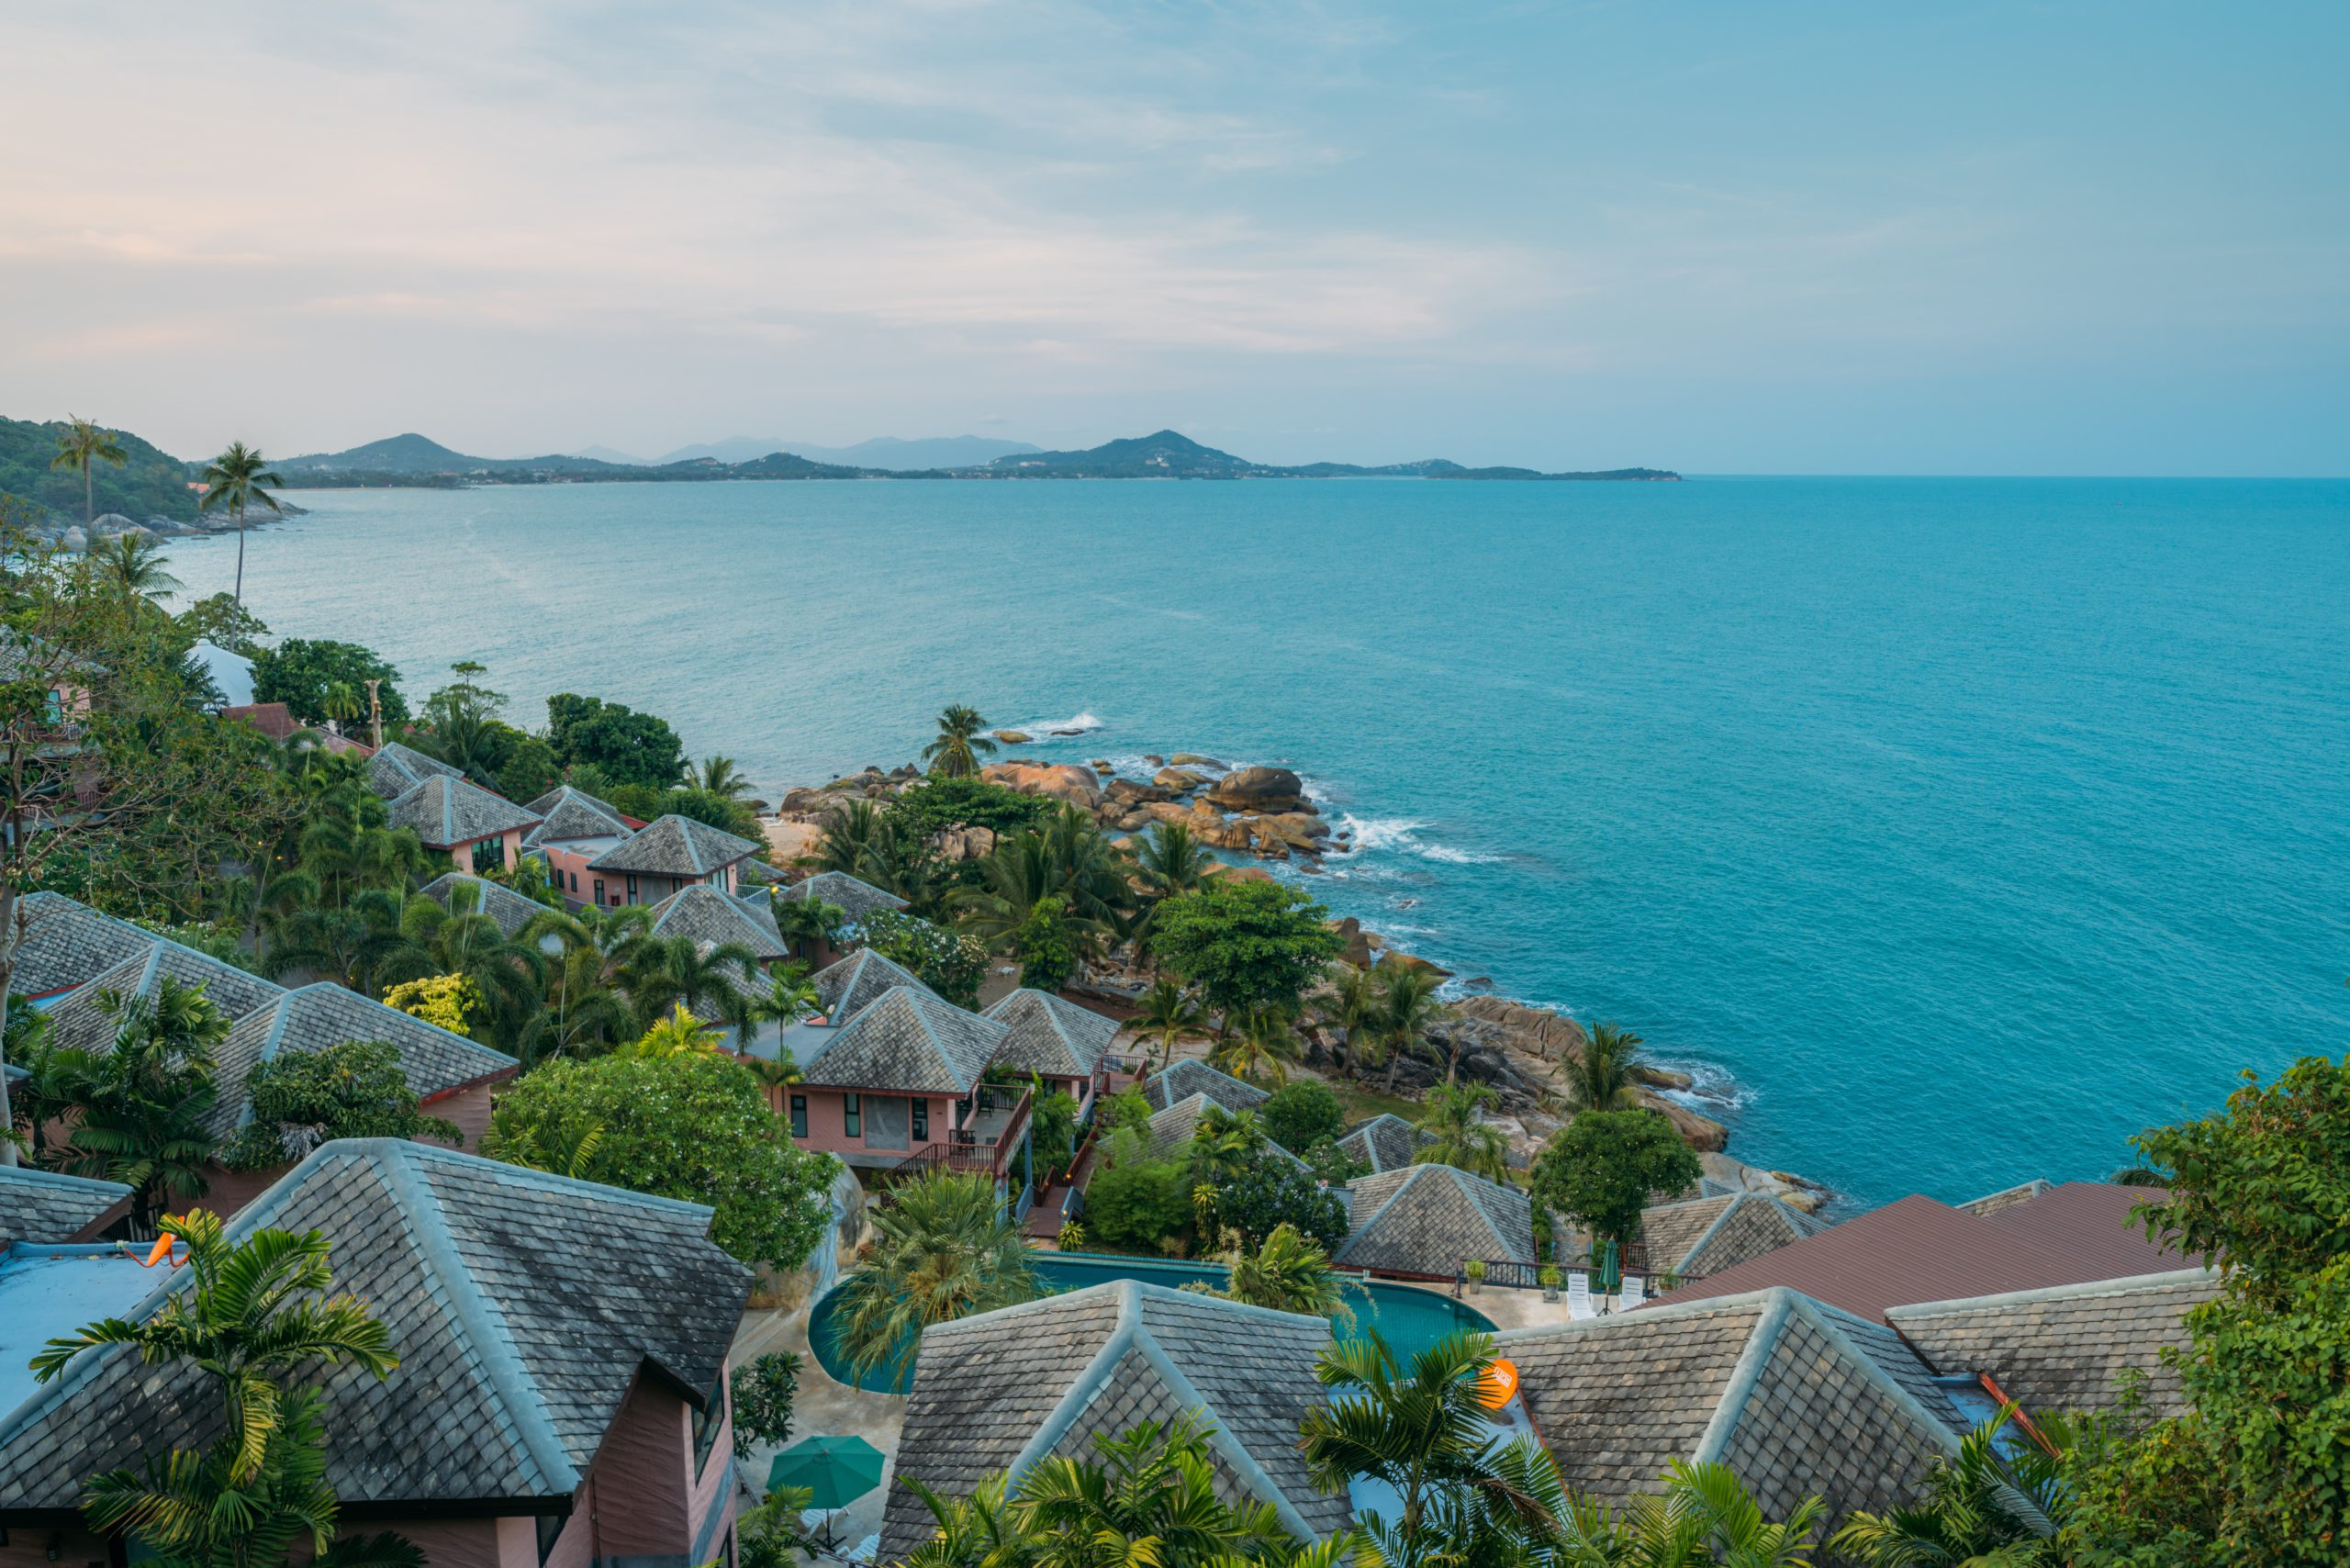 A shot of villas overlooking the blue shore in Koh Samui